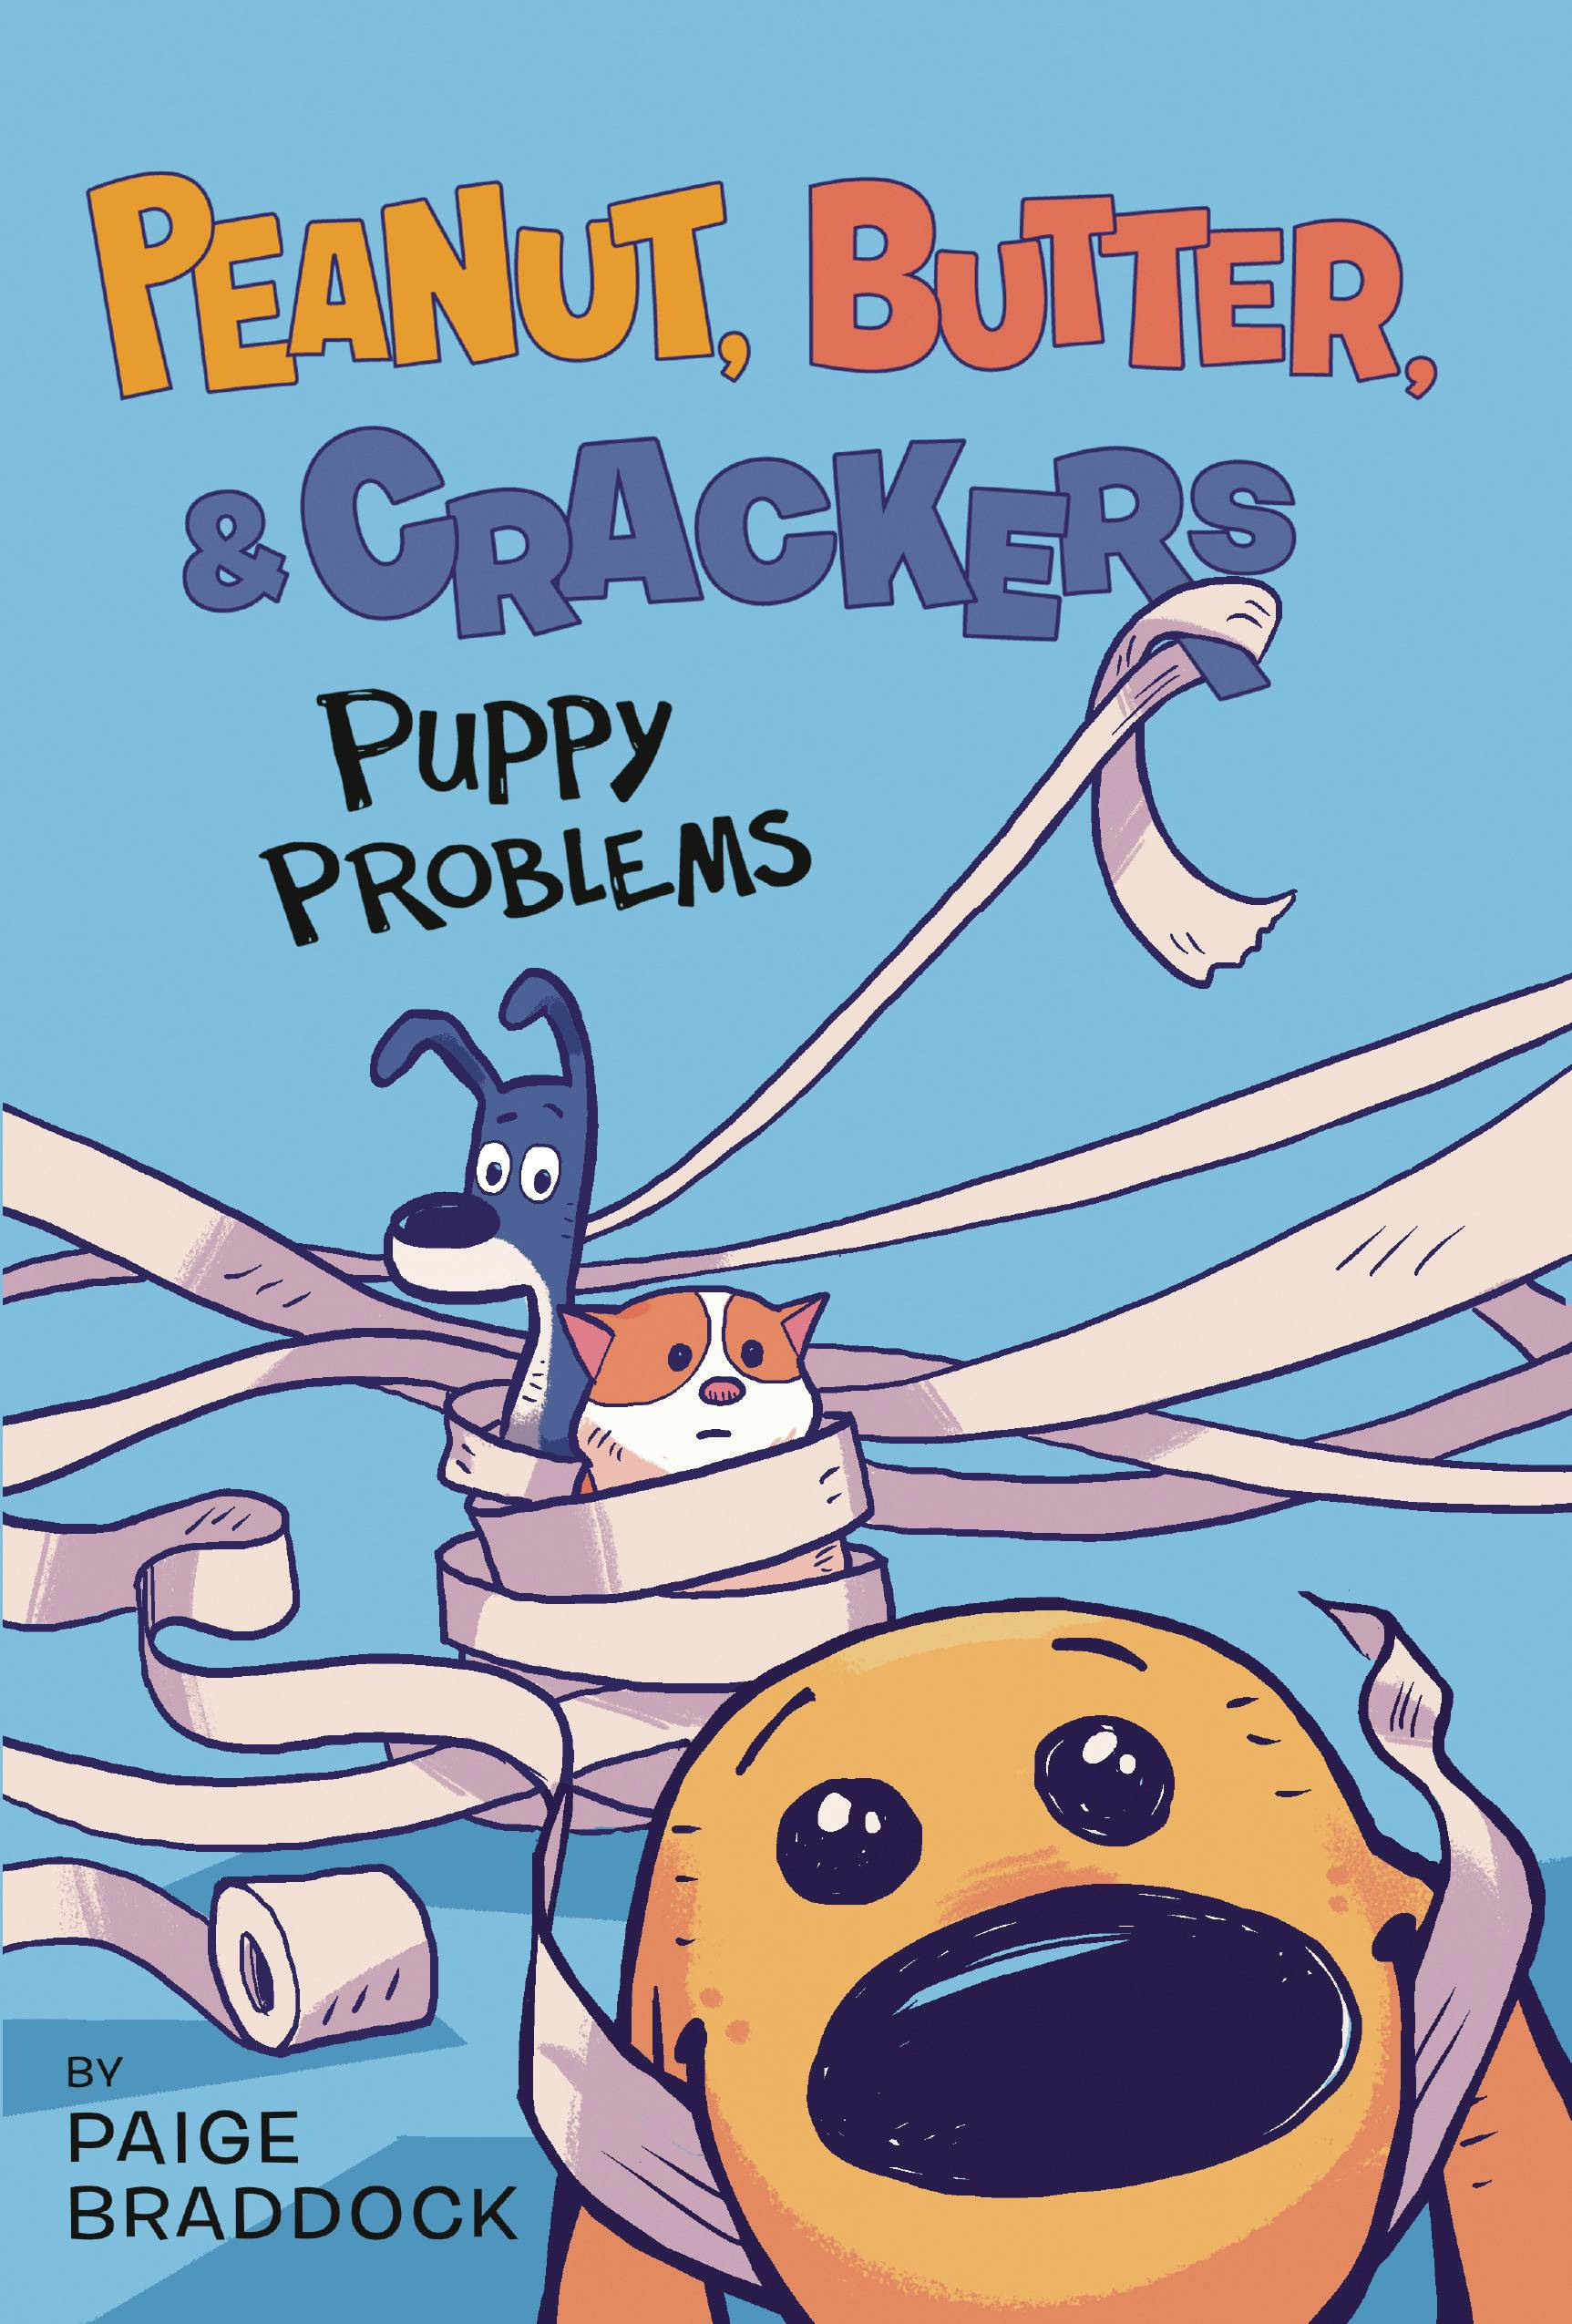 PEANUT BUTTER & CRACKERS YR TP 01 PUPPY PROBLEMS